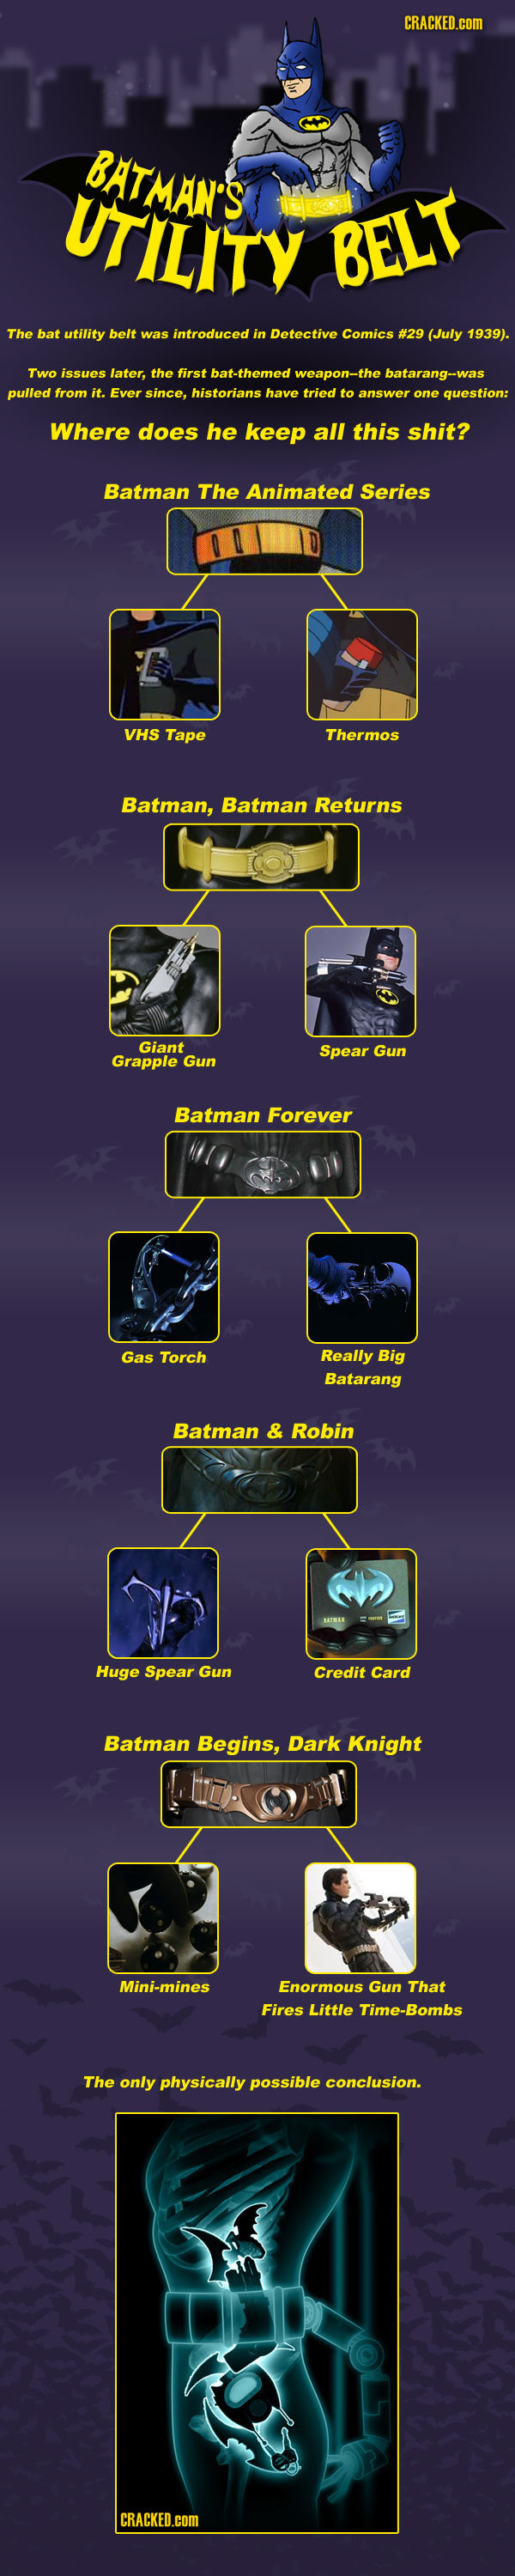 The Batbelt Explained. Of course it makes sense! Also, check out the series I am trying to make . The bat utility hen was introduced in Detective Comics #29 (du